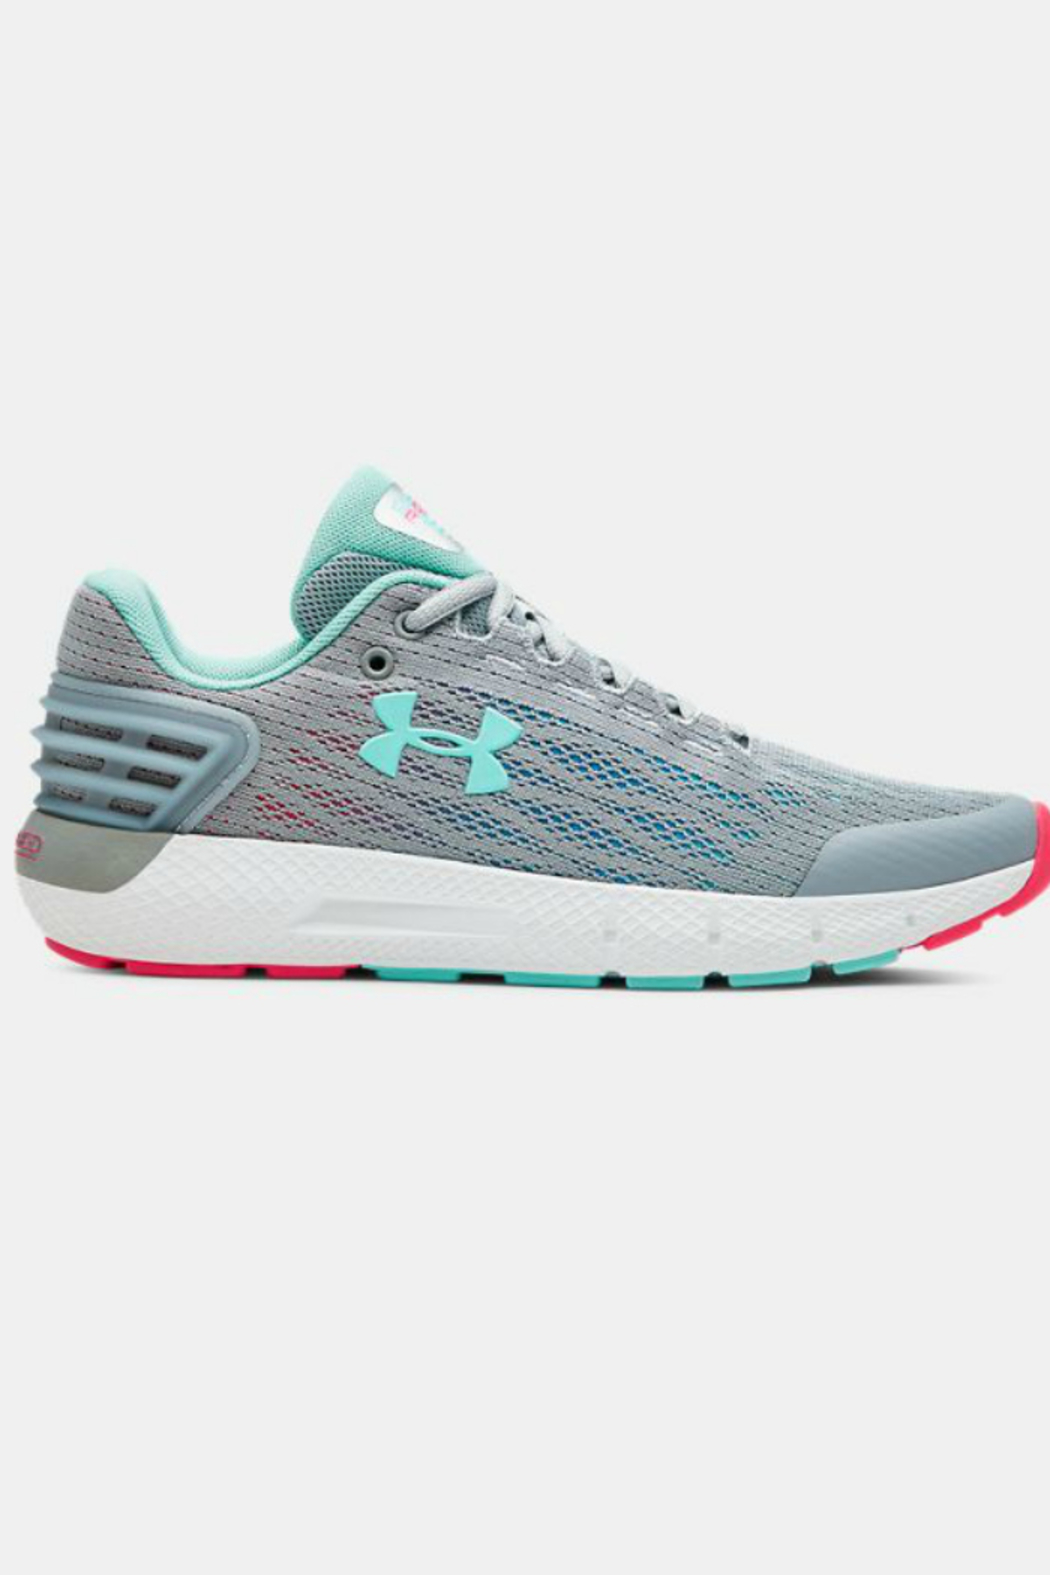 Under Armour UA GIRLS CHARGED ROGUE - Main Image